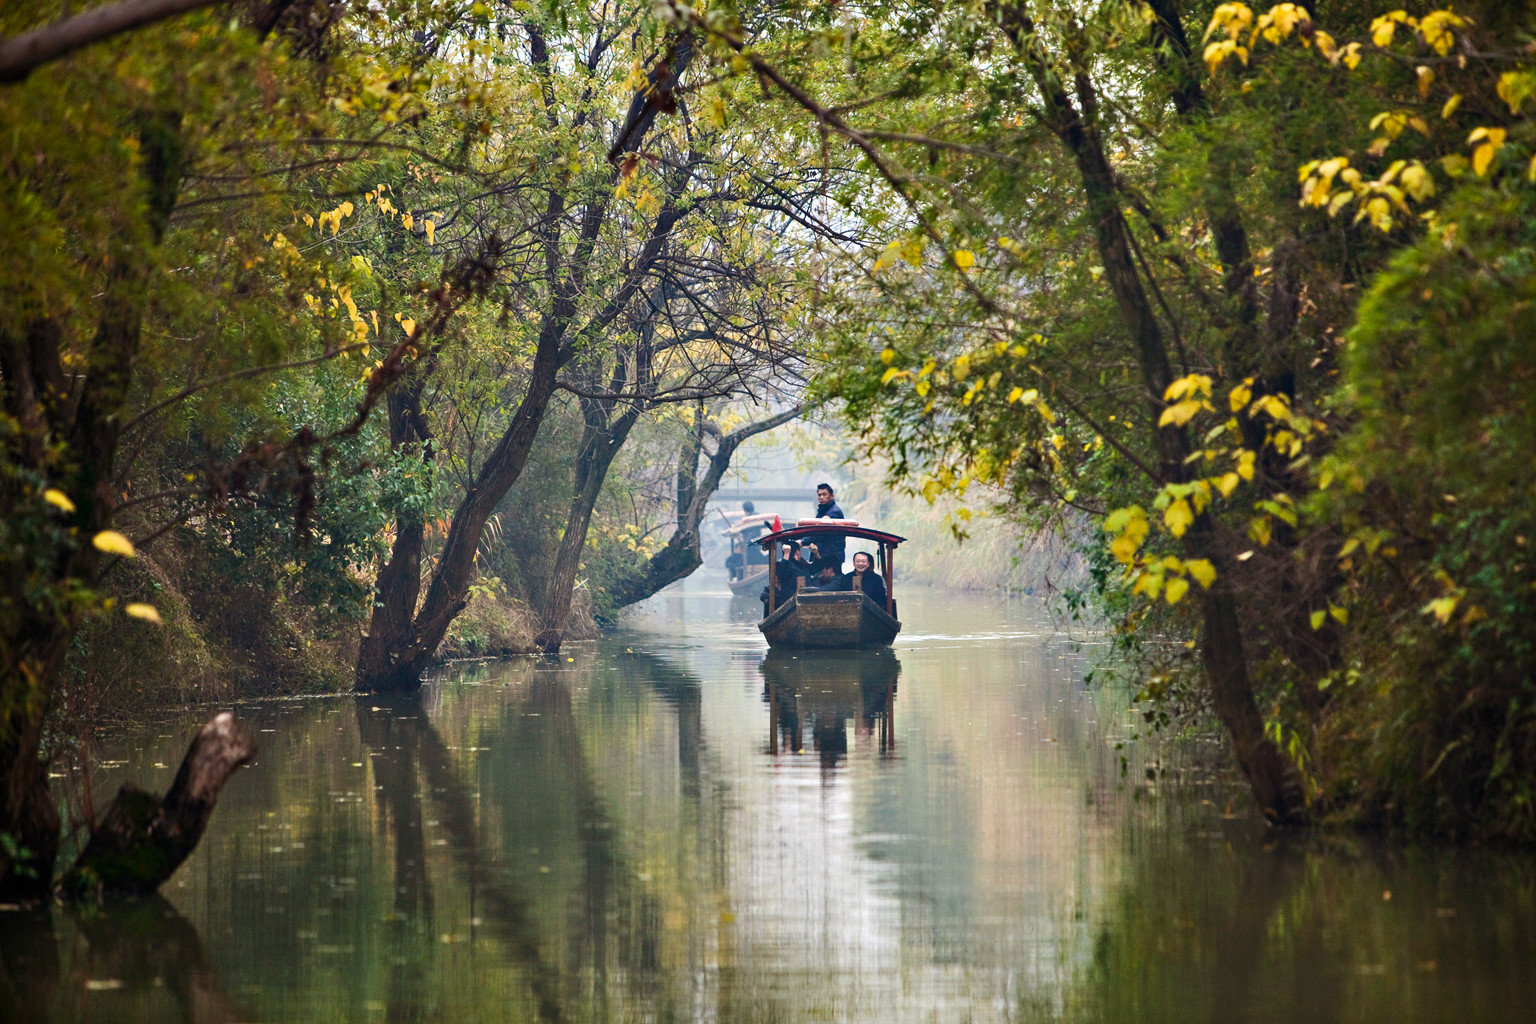 Boat Cultural Nature Outdoor Activities tree water atmospheric phenomenon River Canal waterway season morning autumn leaf vehicle stream way plant